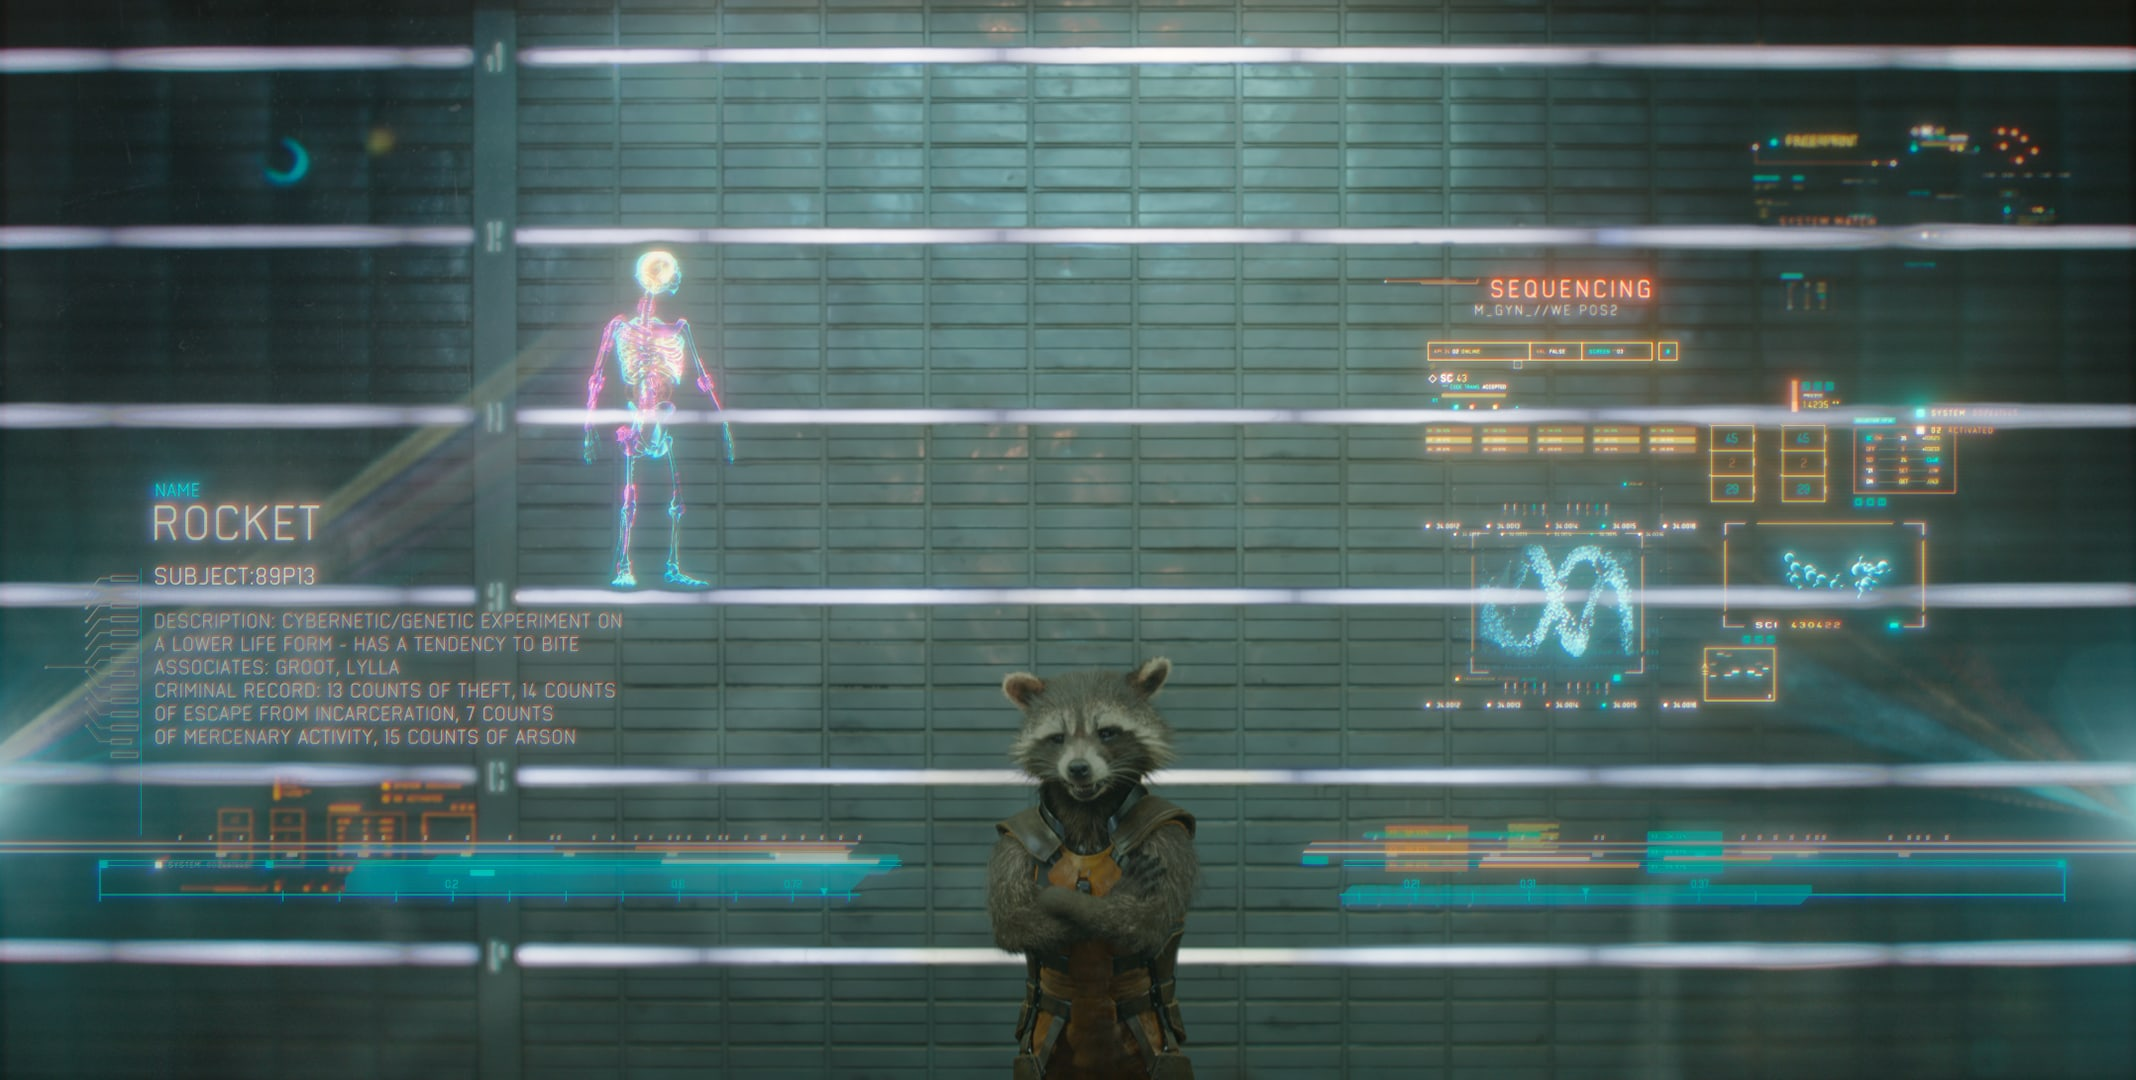 Rocket (a raccoon) voiced by Bradley Cooper in the movie Guardians of the Galaxy